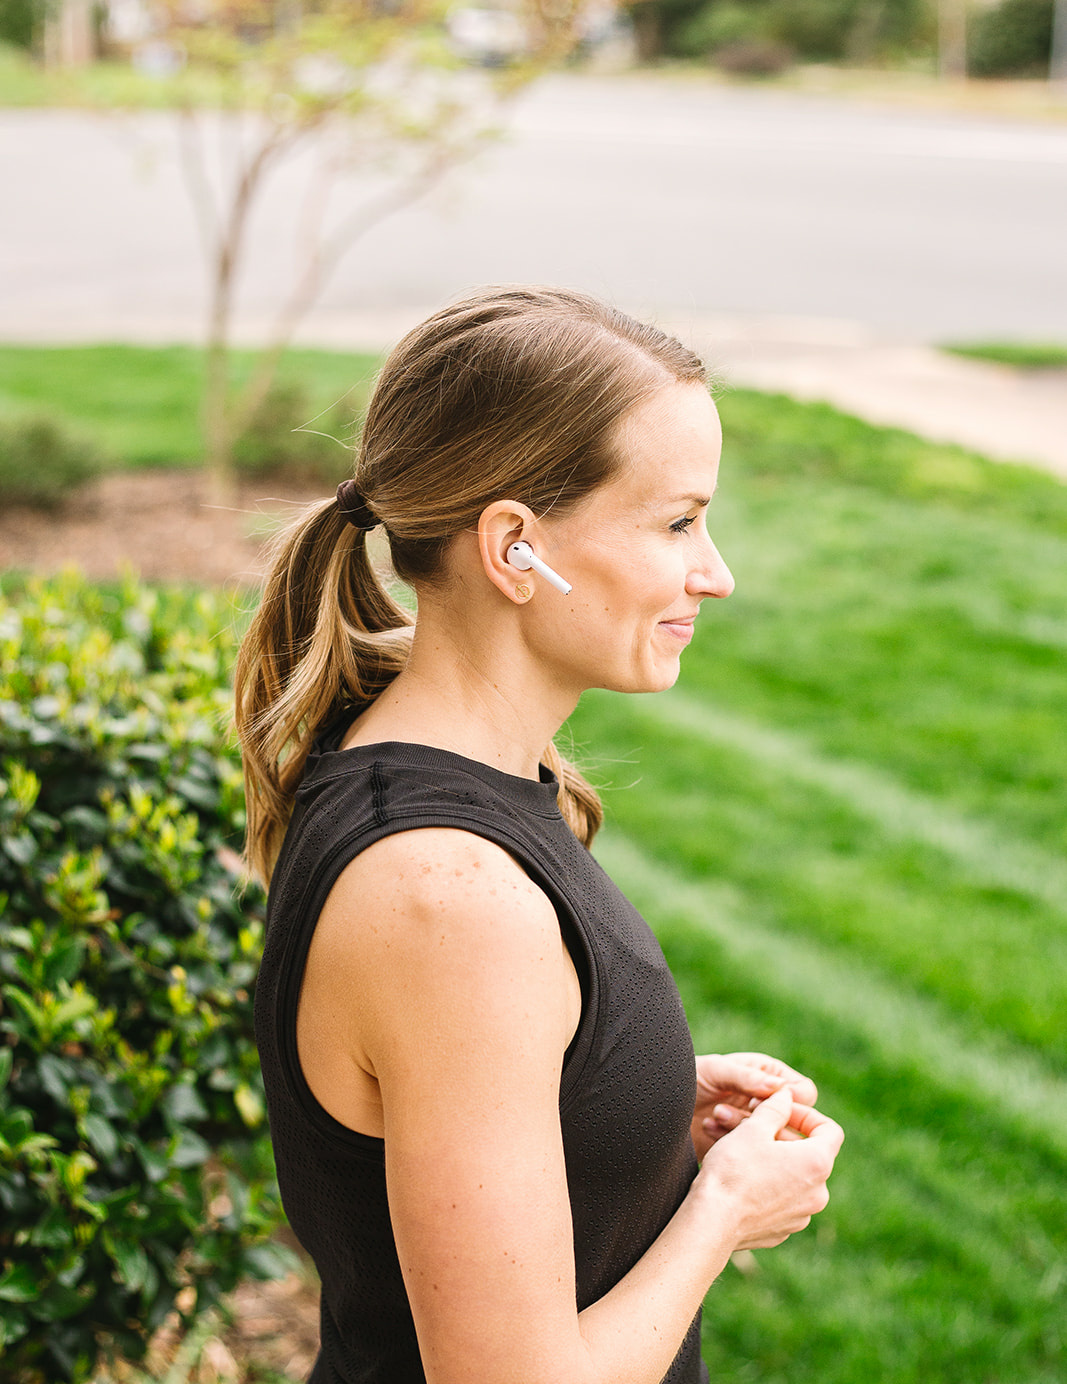 Apple Airpods Review from a Marathon Runner